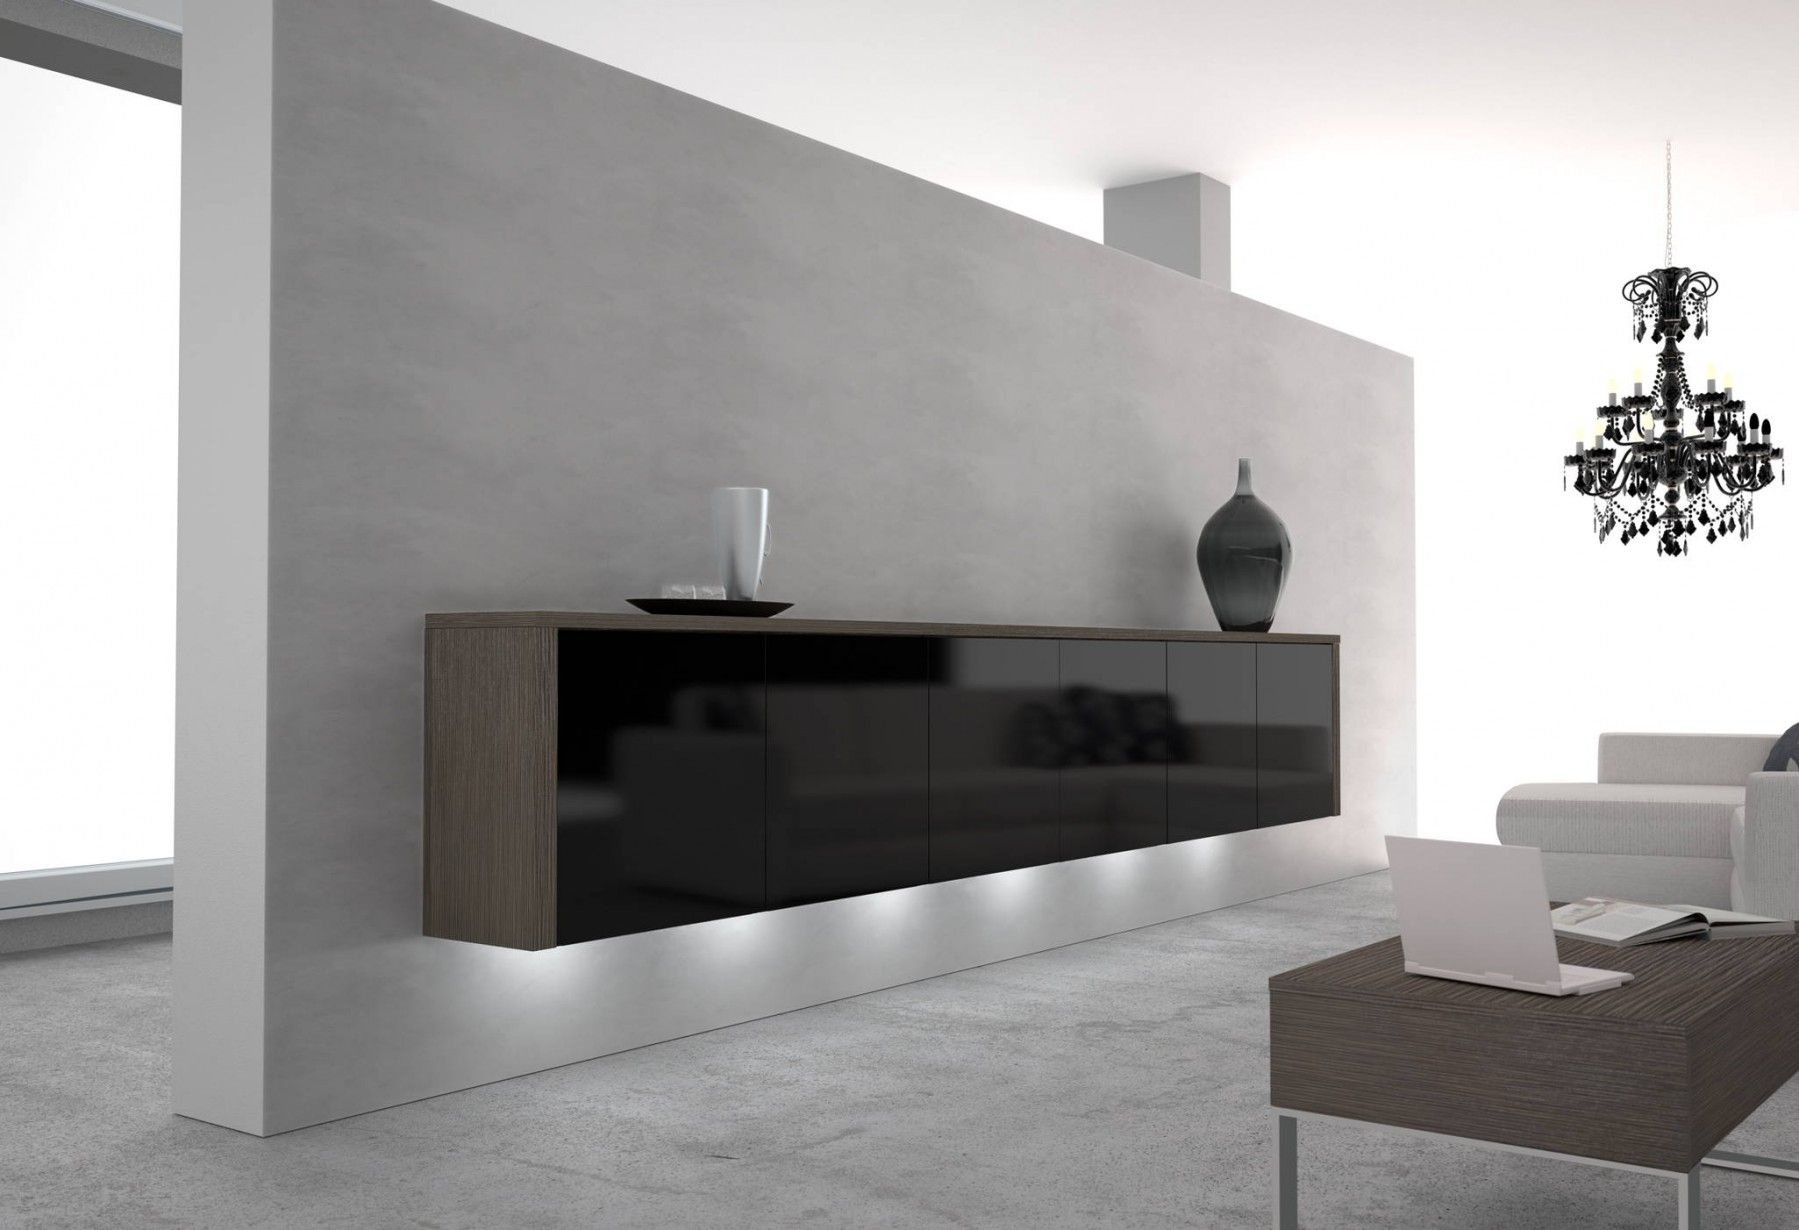 sideboard altura moving sideboards kommoden wohnzimmer wohnzimmer pinterest kommode. Black Bedroom Furniture Sets. Home Design Ideas